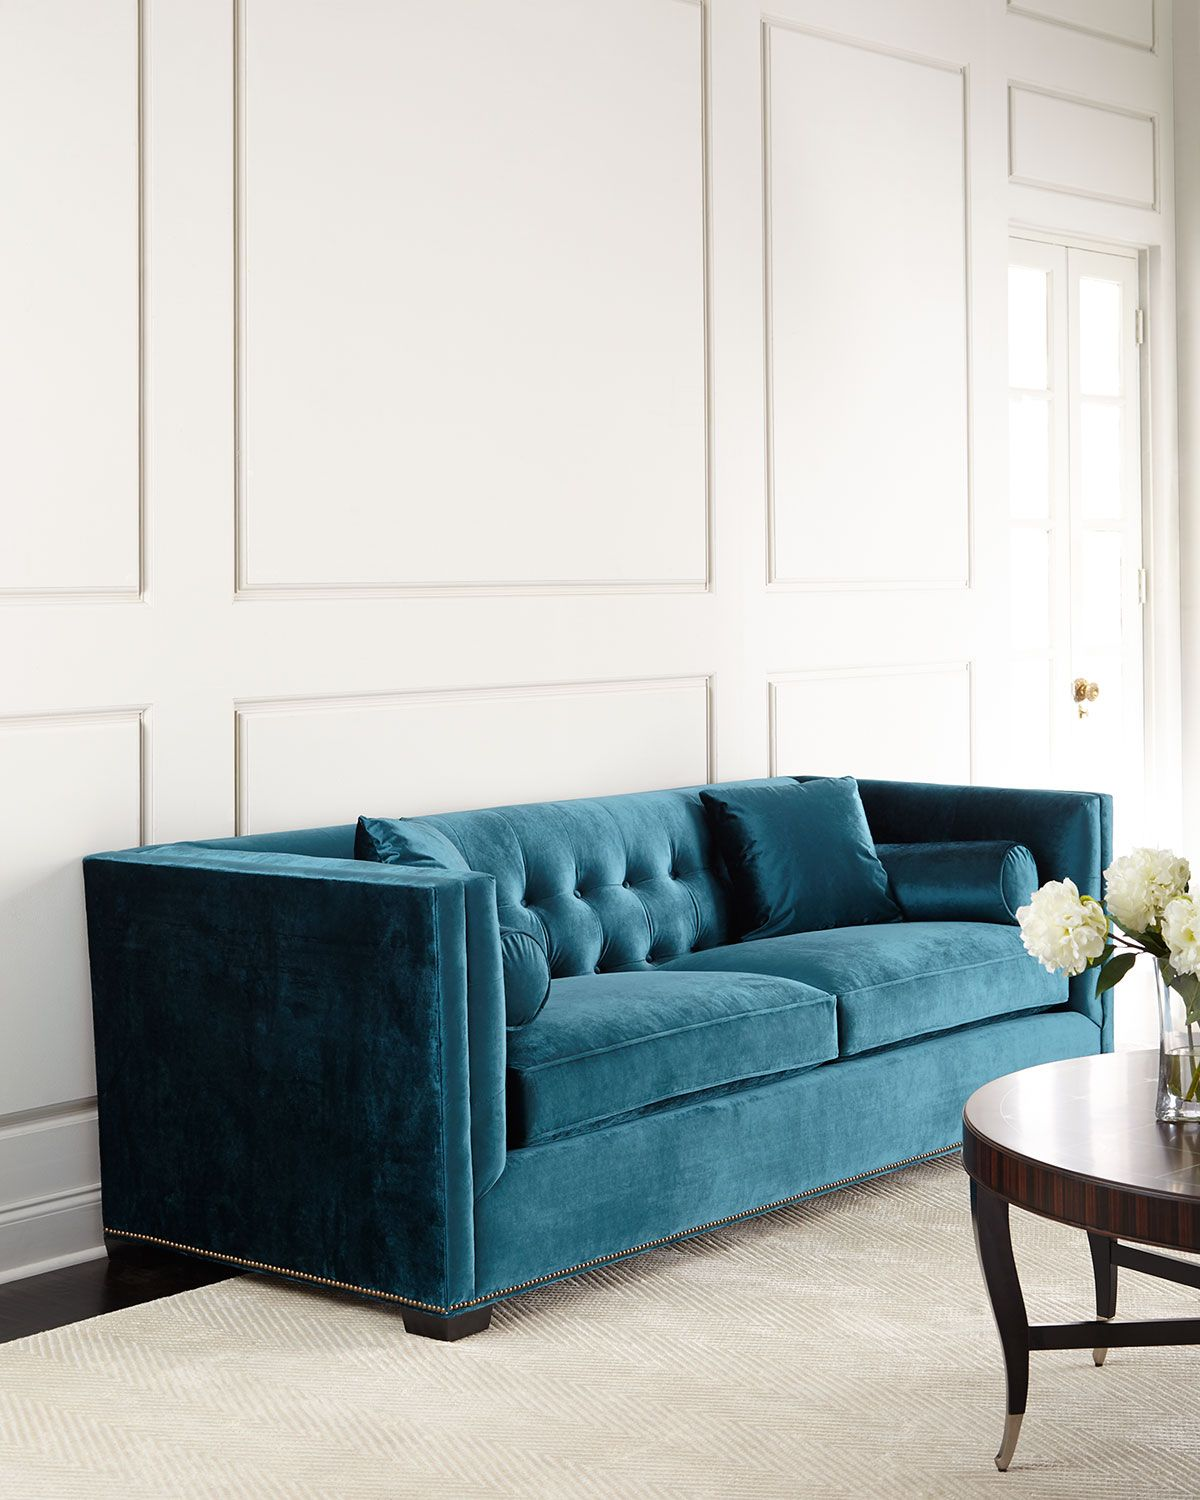 Jade Tufted Sofa | Tossed, Upholstery and Tufted sofa